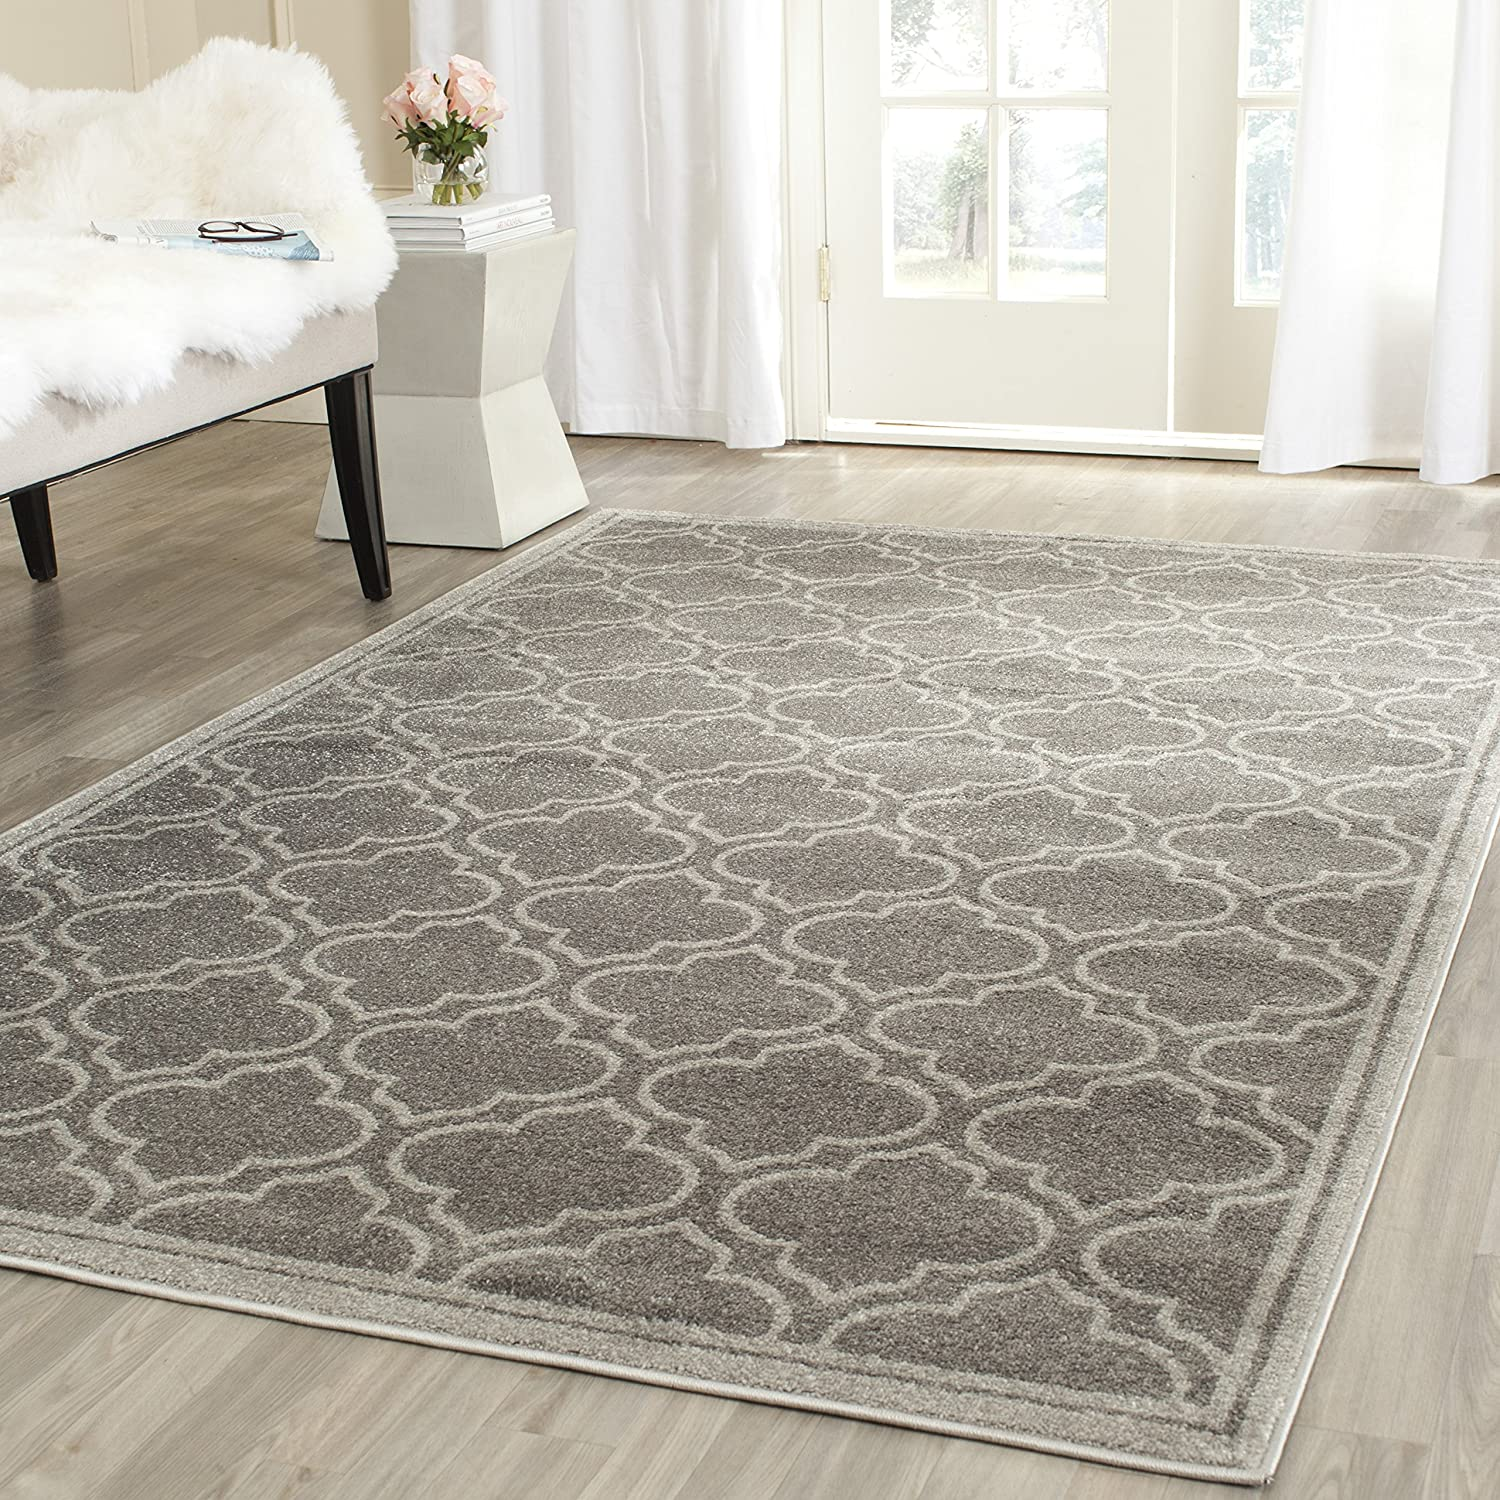 living canada and room ivory soft lark blue designs light gray colored rug beige rugs white hayley dining cream carpet black area amazing fabulous manor grey geometric